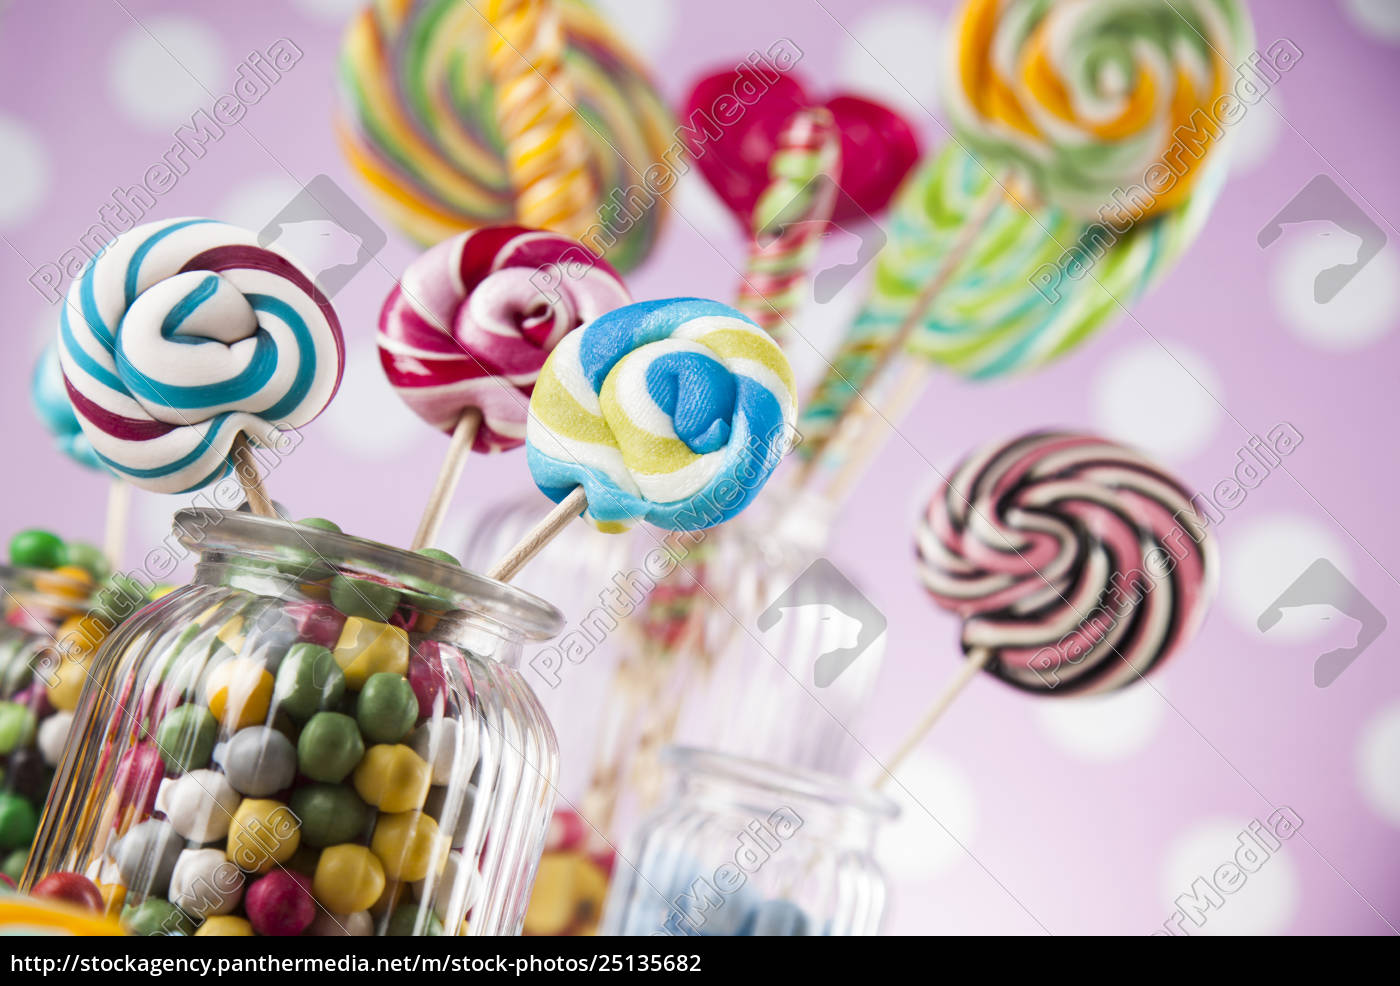 colorful, lollipops, and, different, colored, round - 25135682